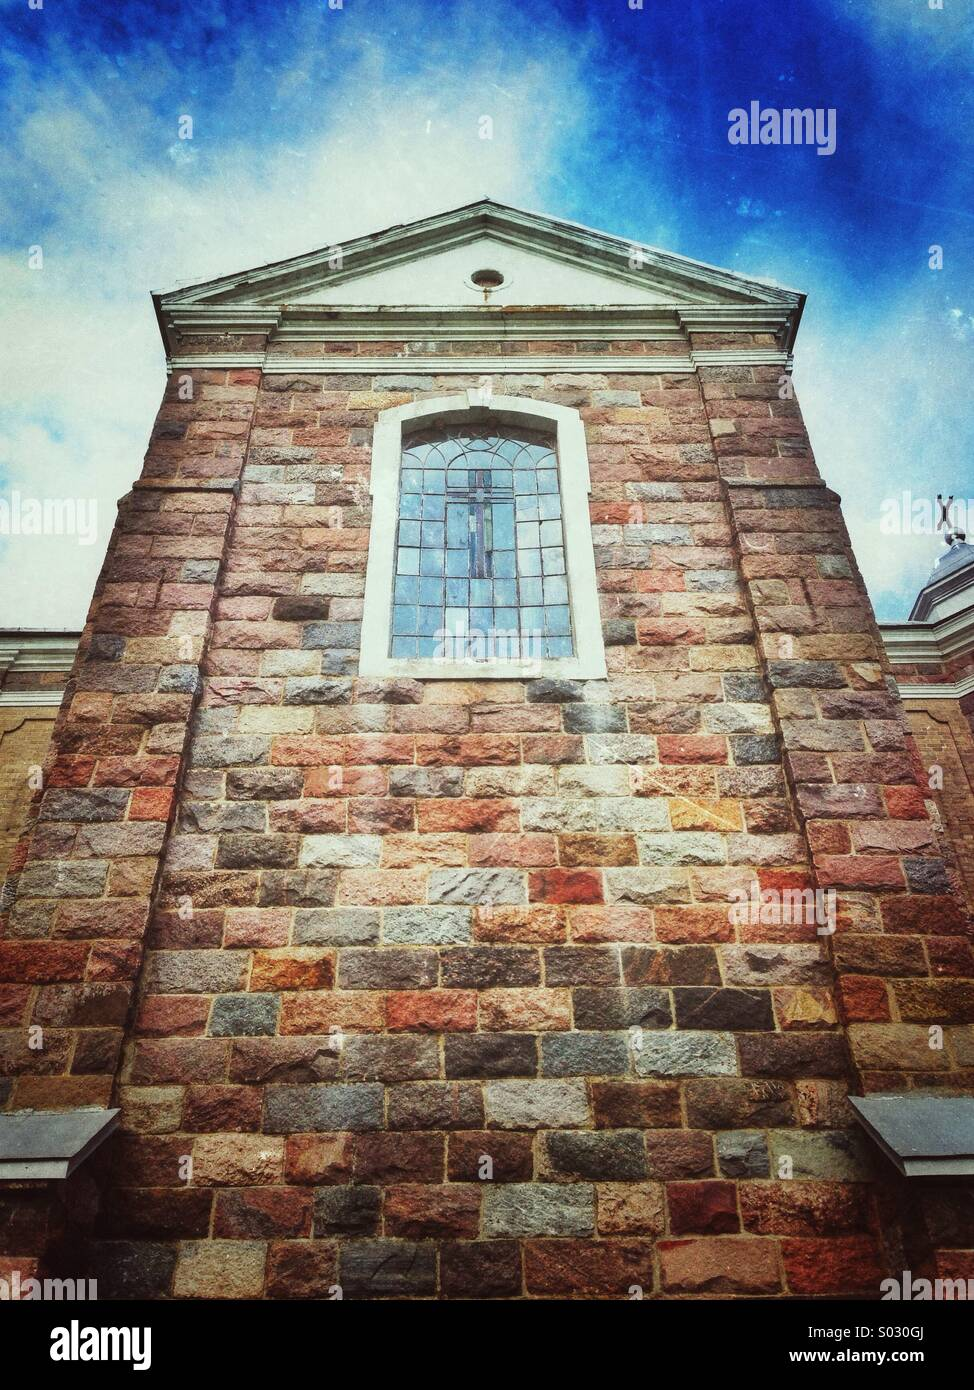 Part of church, found on the trip in Lithuania Stock Photo